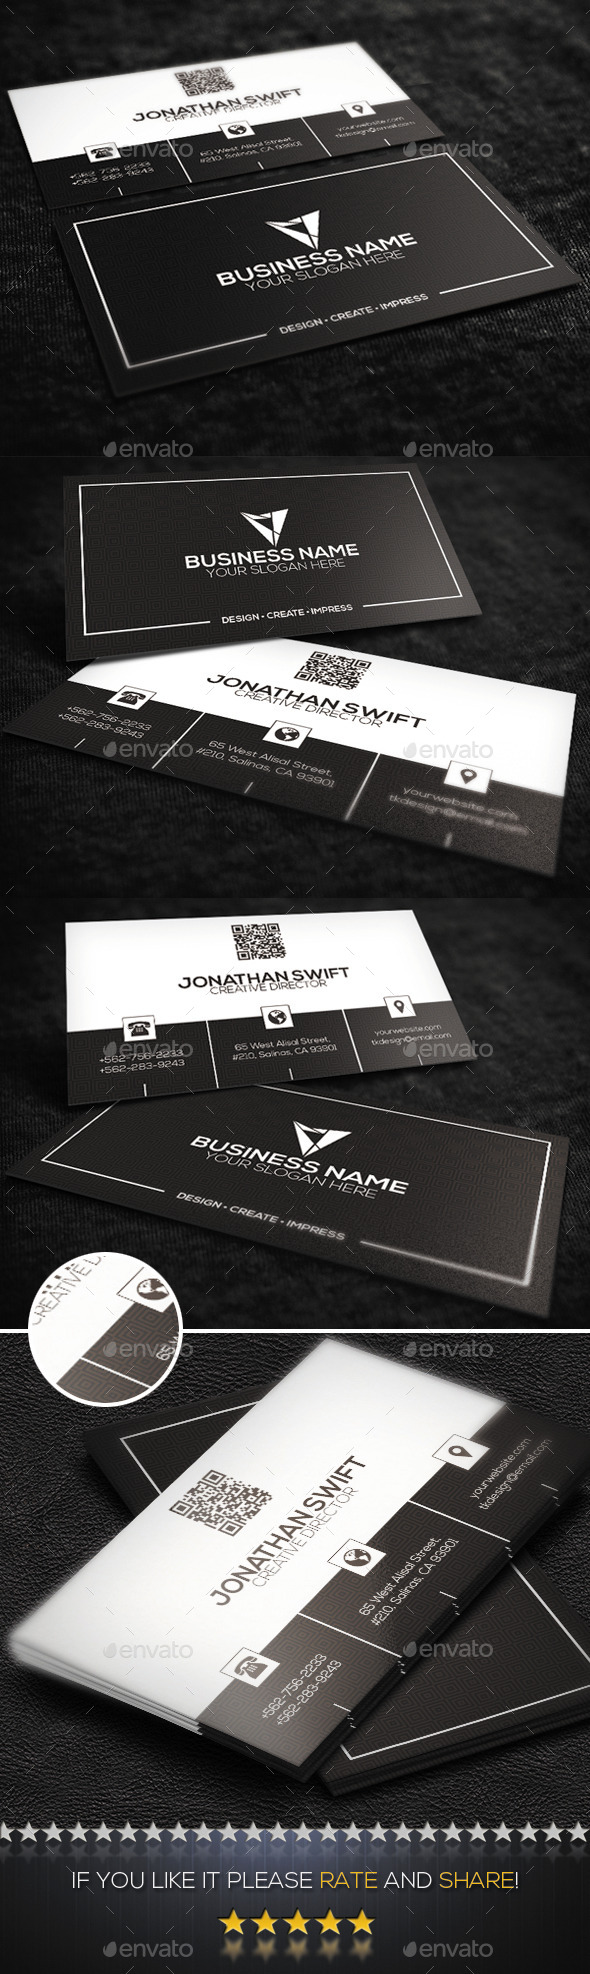 Corporate Business Card No.03 - Corporate Business Cards